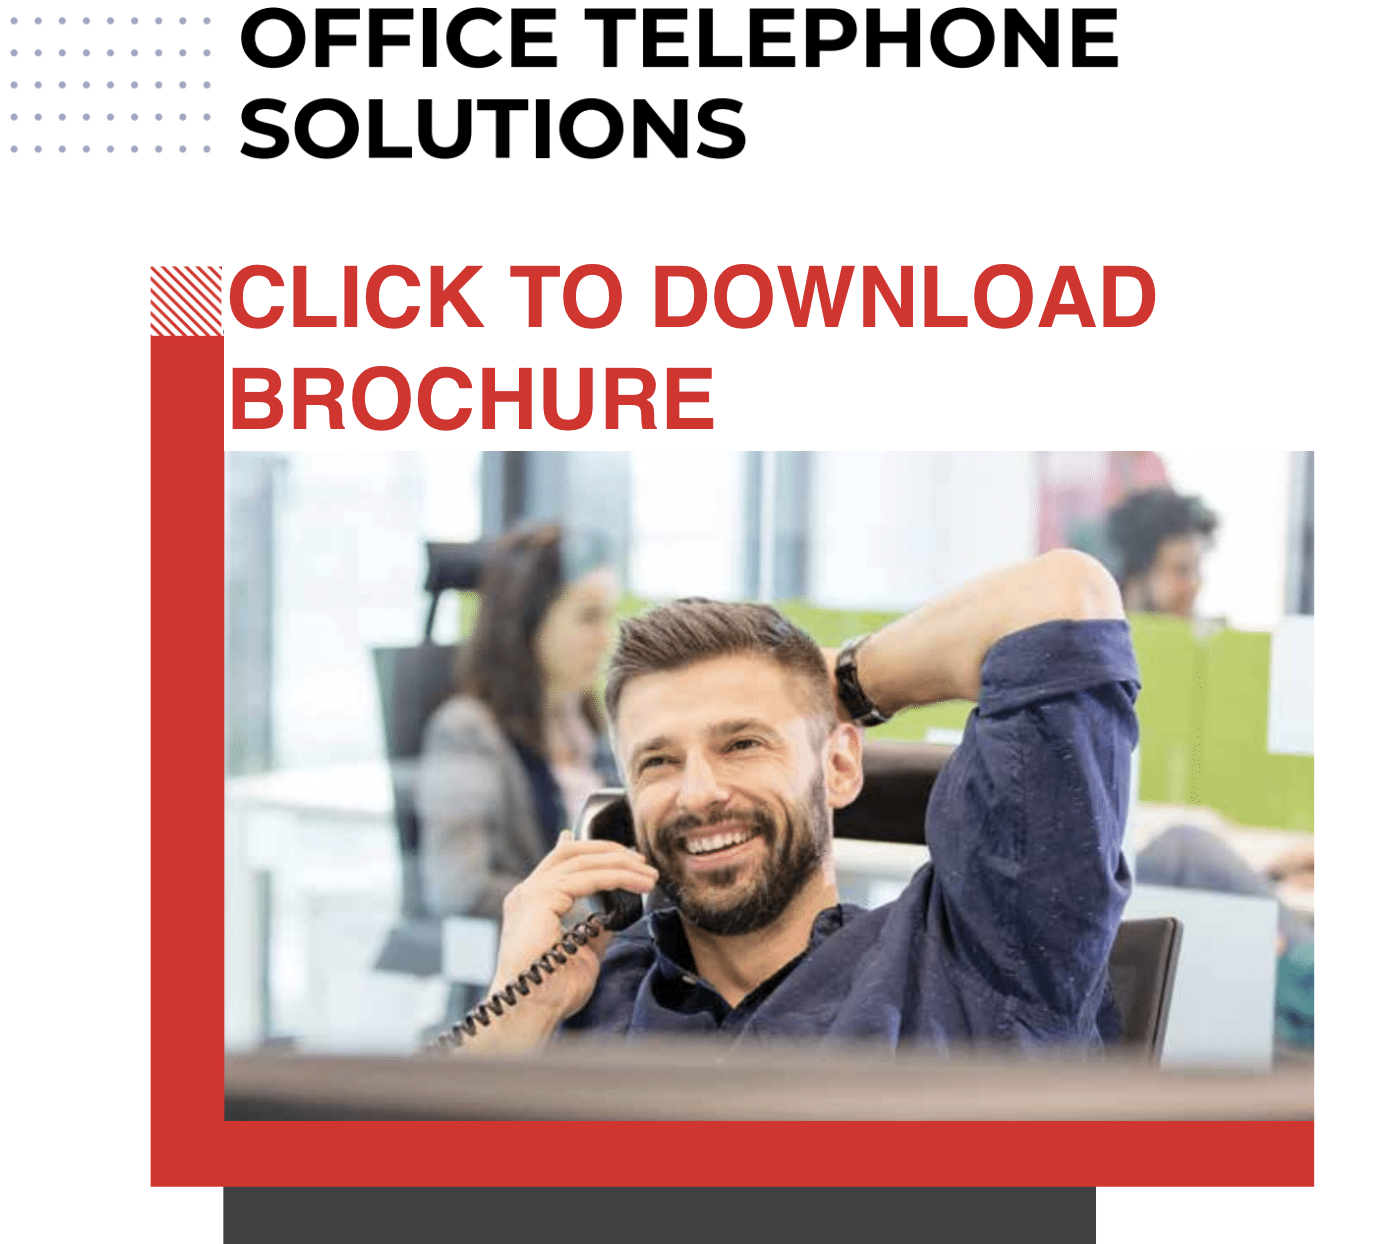 call to action to download telephony brochure